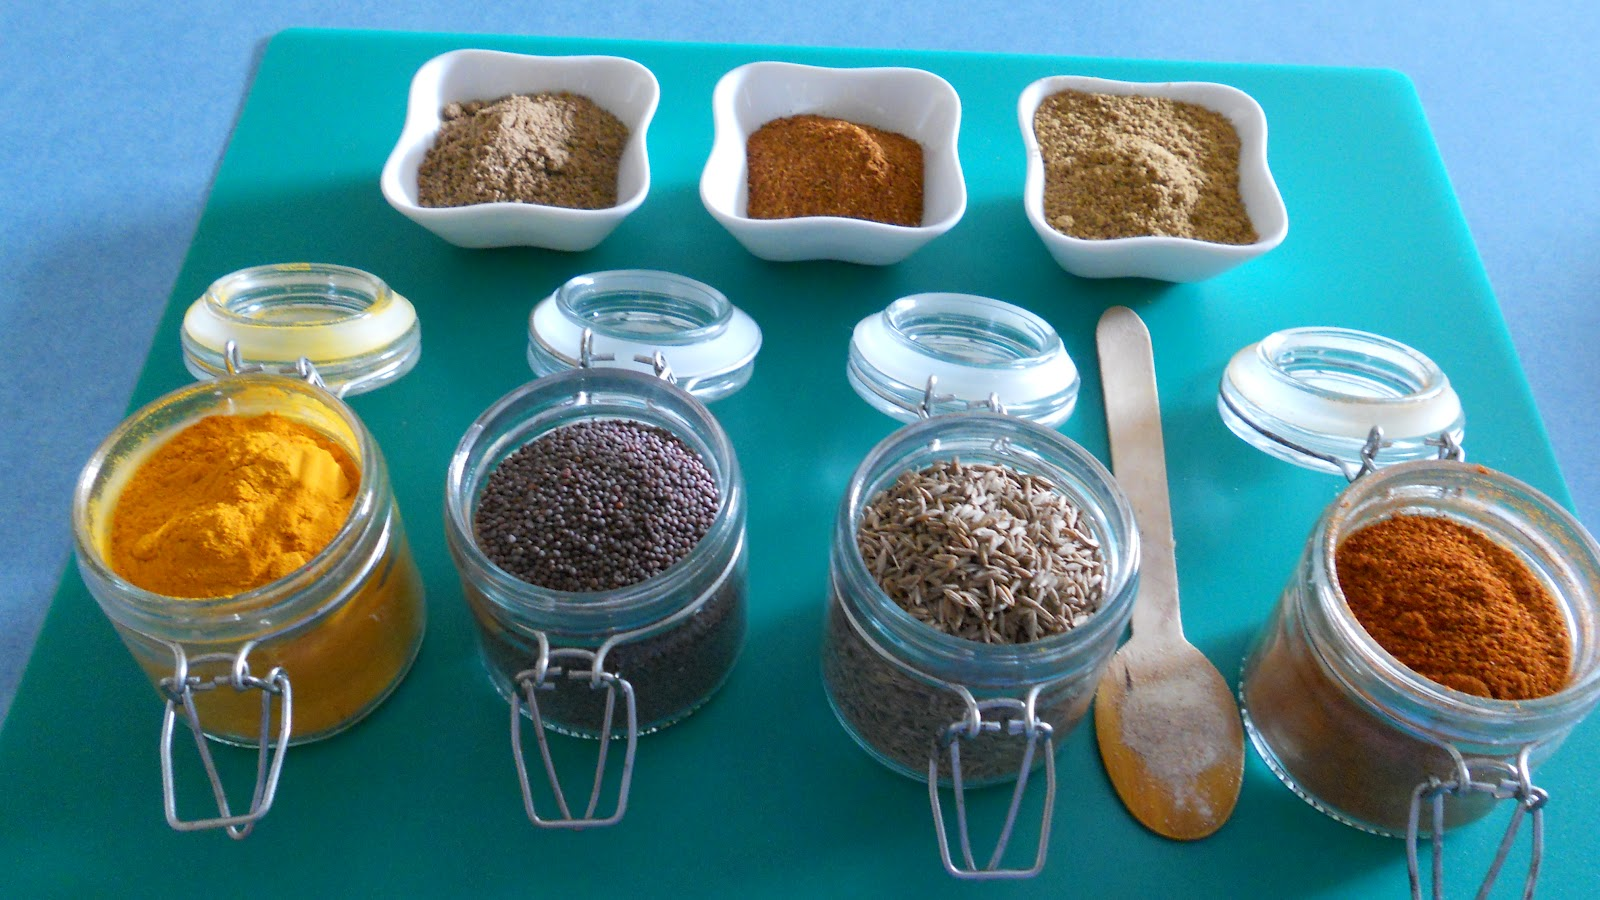 SPICE MAGIC | NeVs KiTcheN...CUrrY, MaSala and MoRe.....